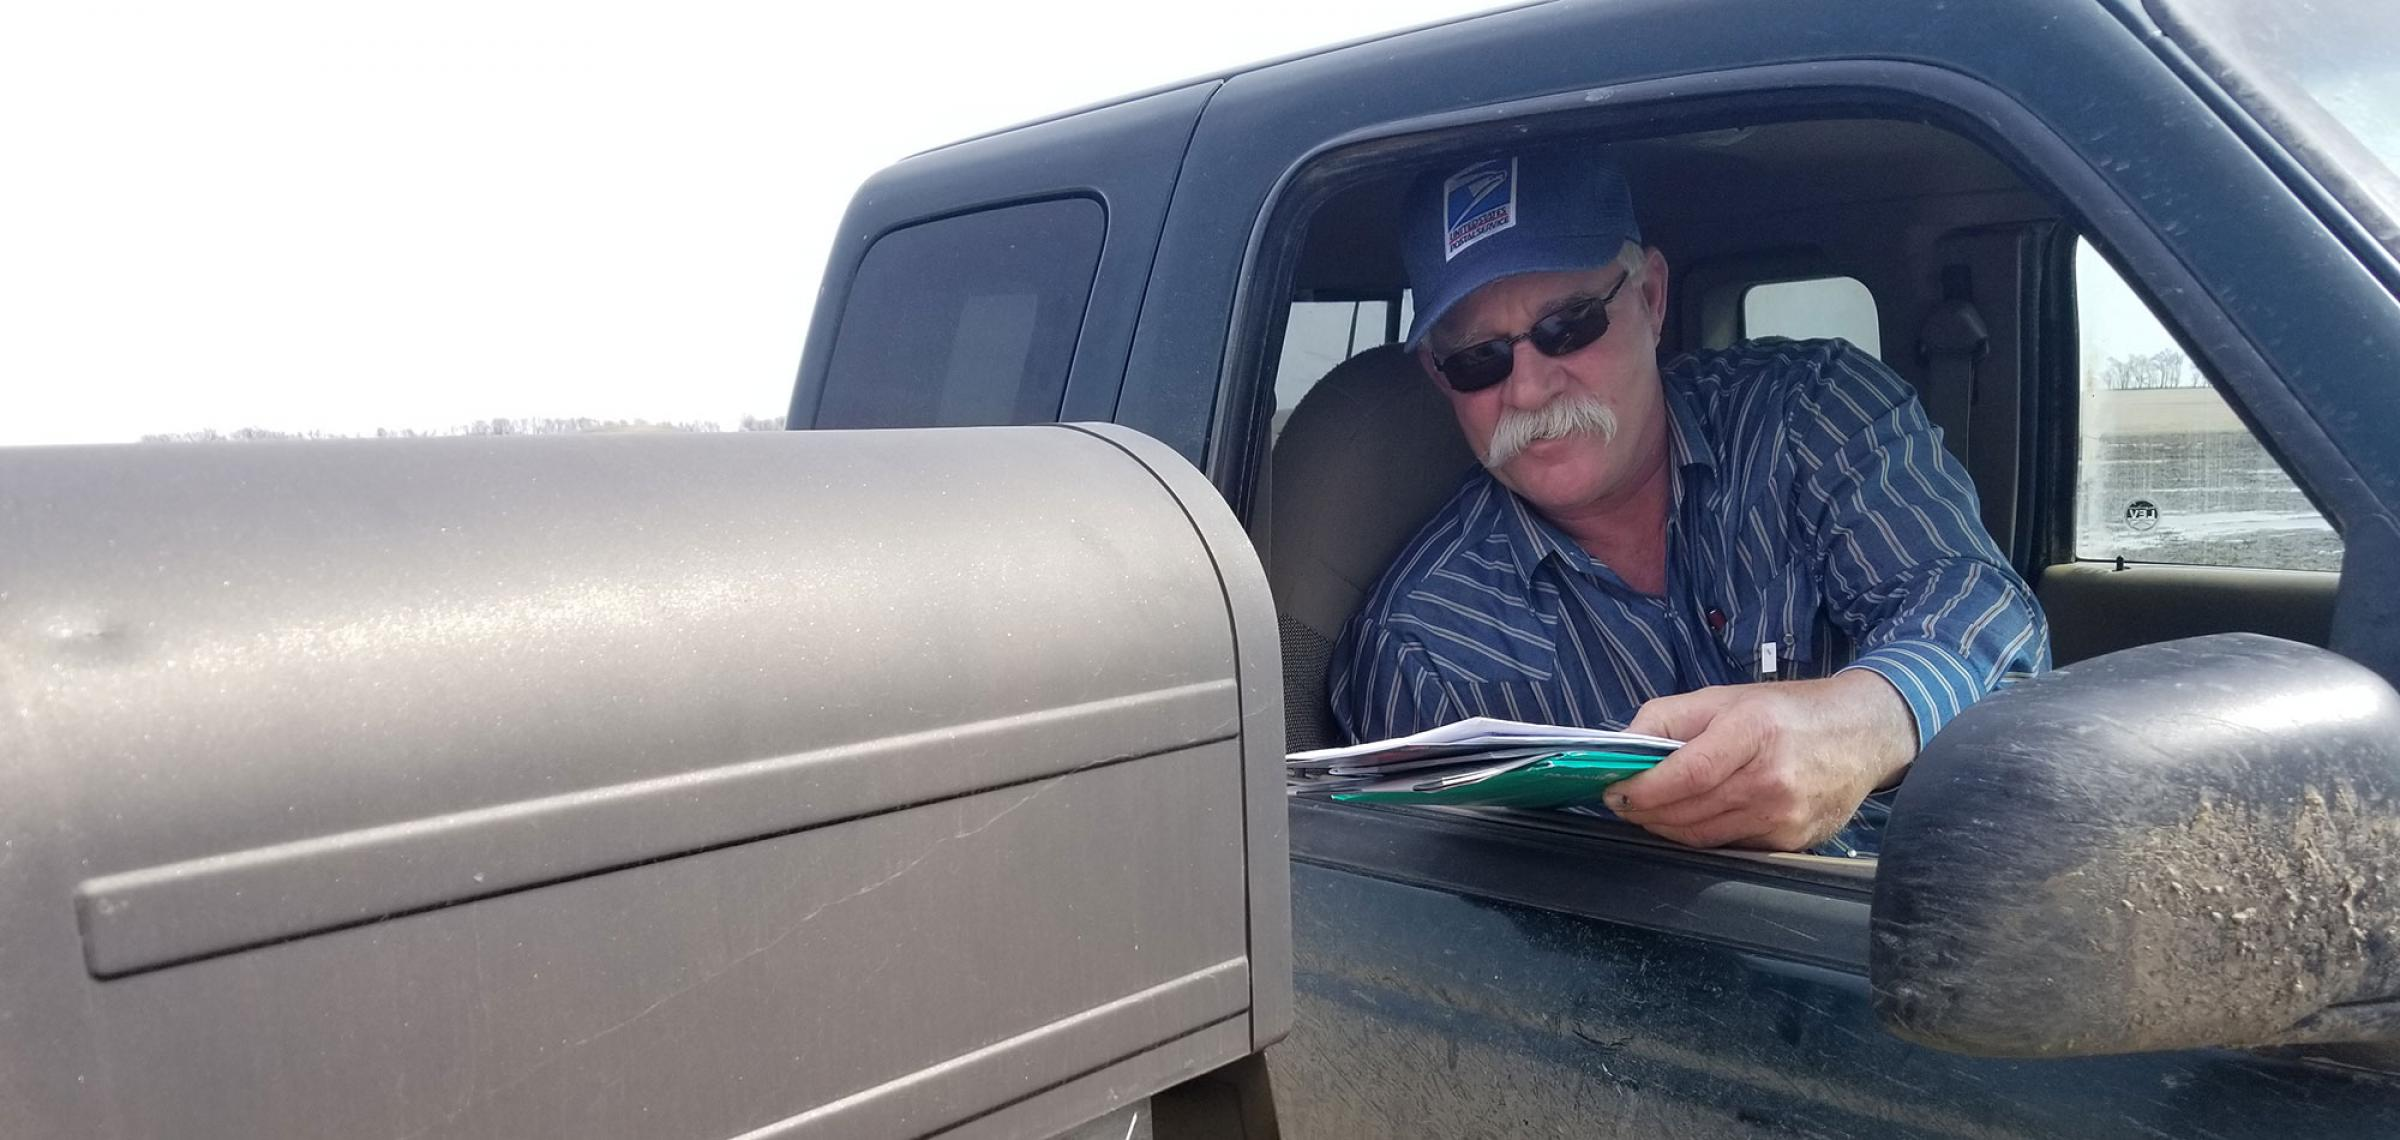 Jeff Trzpuc is a rural mail carrier from Kathryn. Trzpuc has delivered mail for more than 20 years and has helped the Department with its survey during the course of his career.